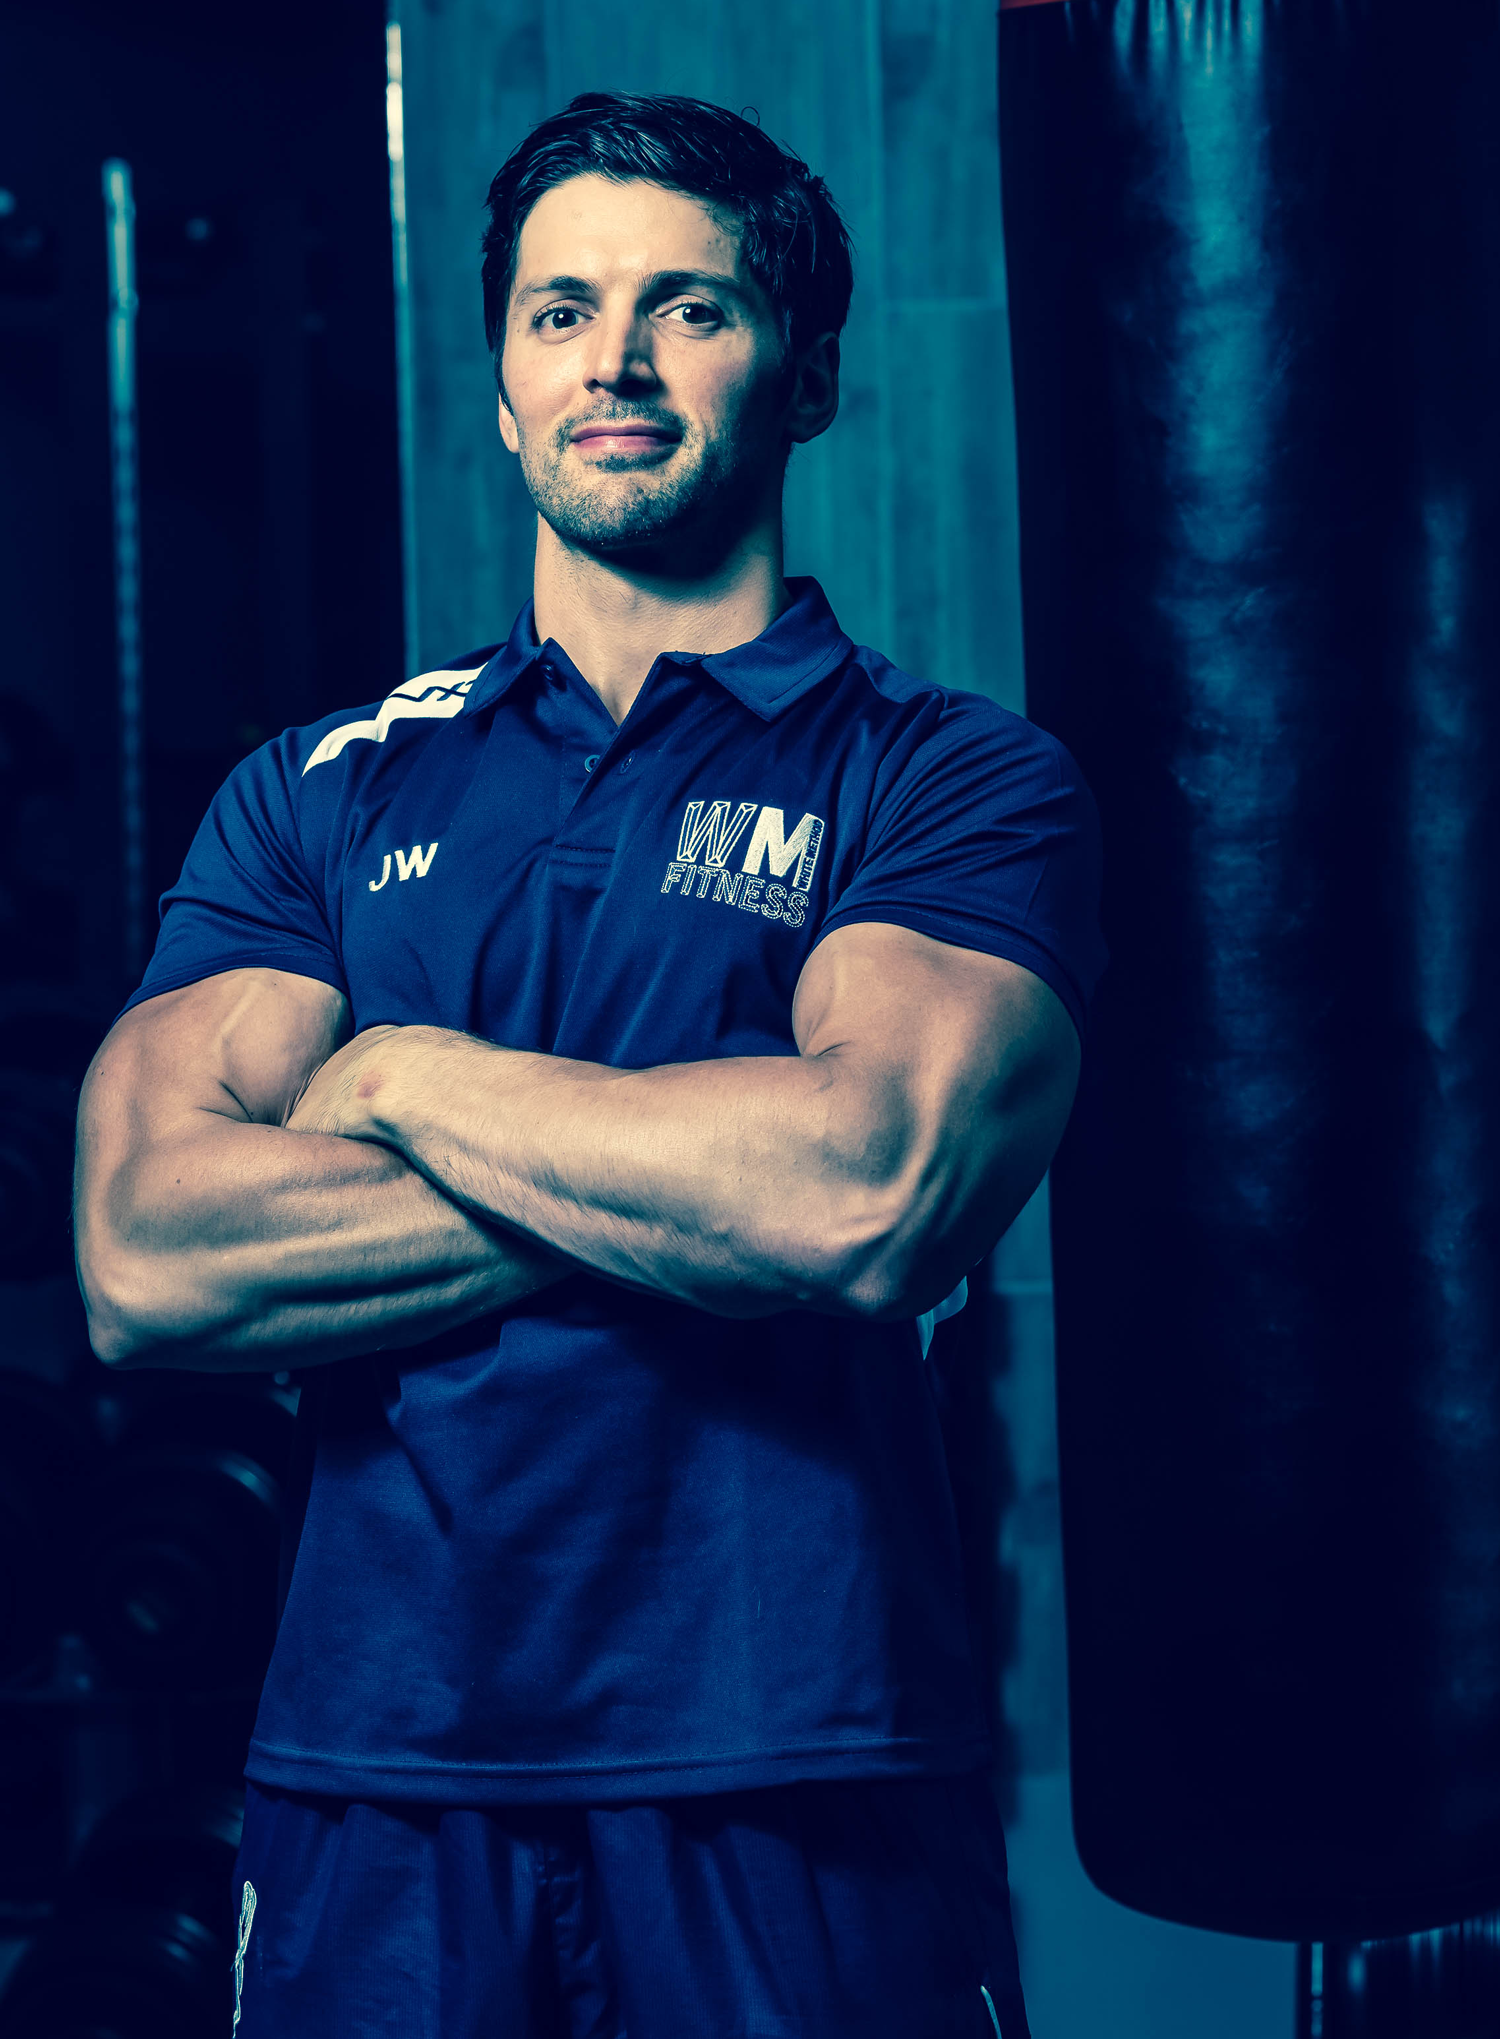 Hi I'm Jonathan - I'm a Glasgow personal trainer, body composition expert and the founder of White Method Fitness. I've spent almost two decades getting the results people have been desperately trying for. Most having trained for years by themselves with little results to show for their efforts. Or others who know what changes they need to make, but struggle to stay motivated and focused.